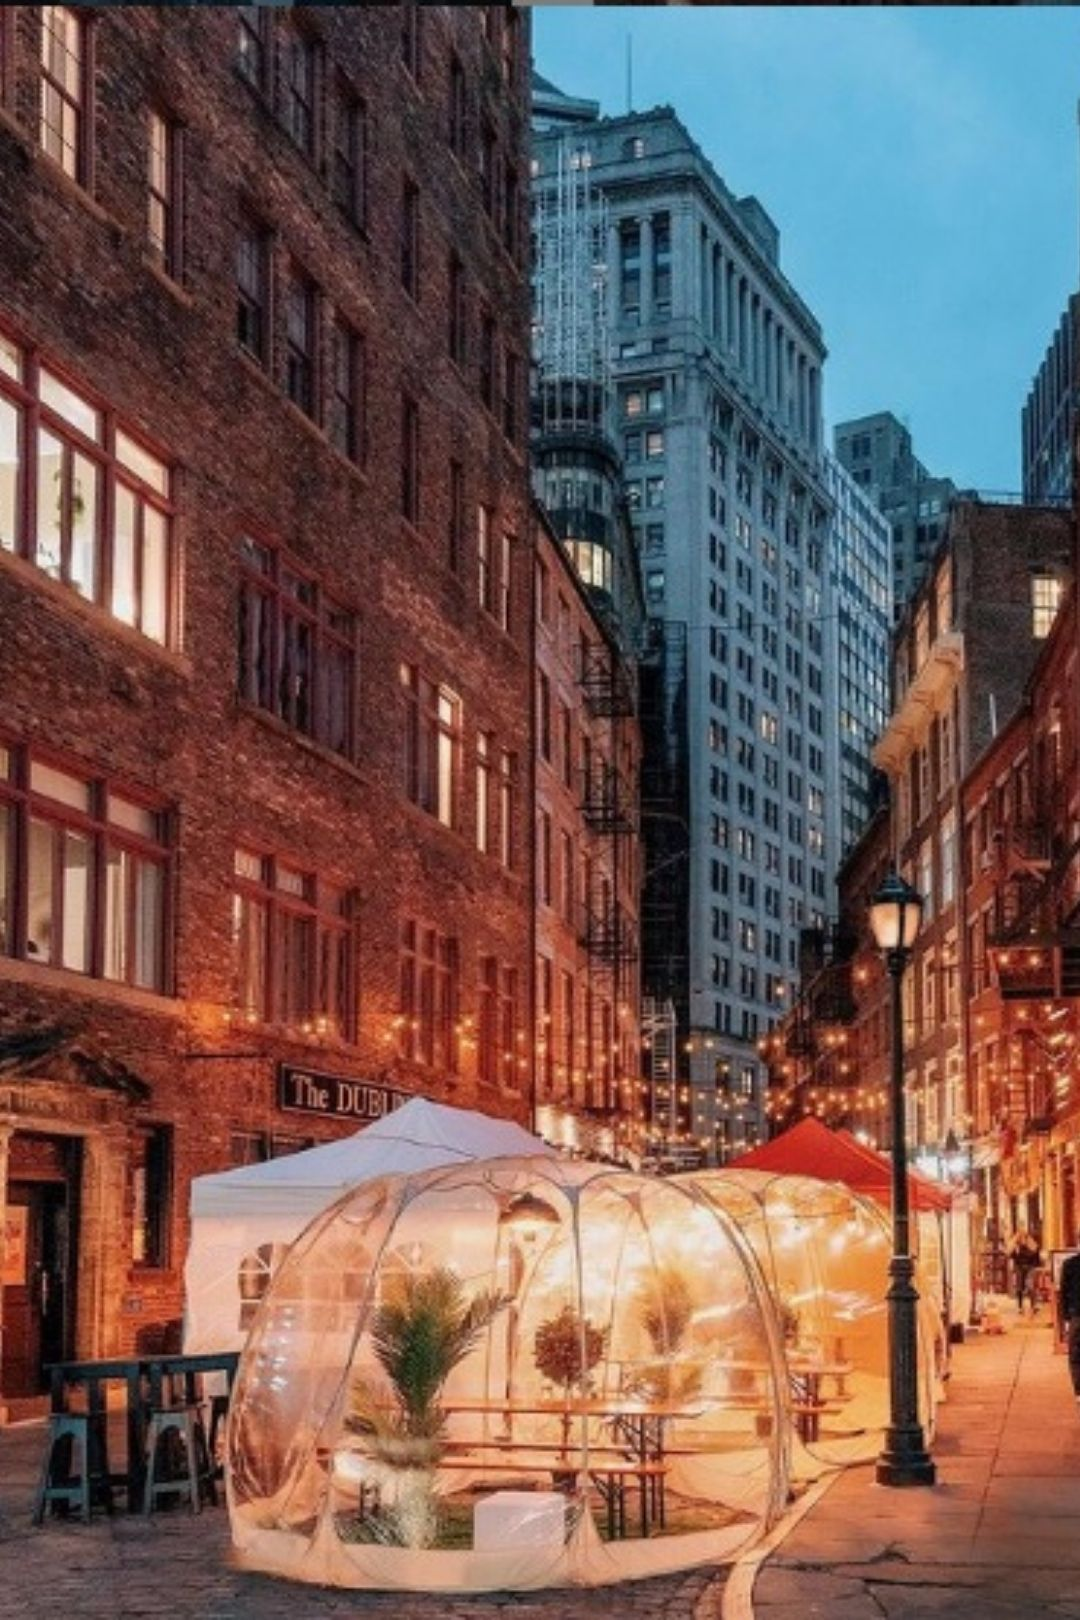 Date Night Cabanas and Brunch Bubbles on Stone Street